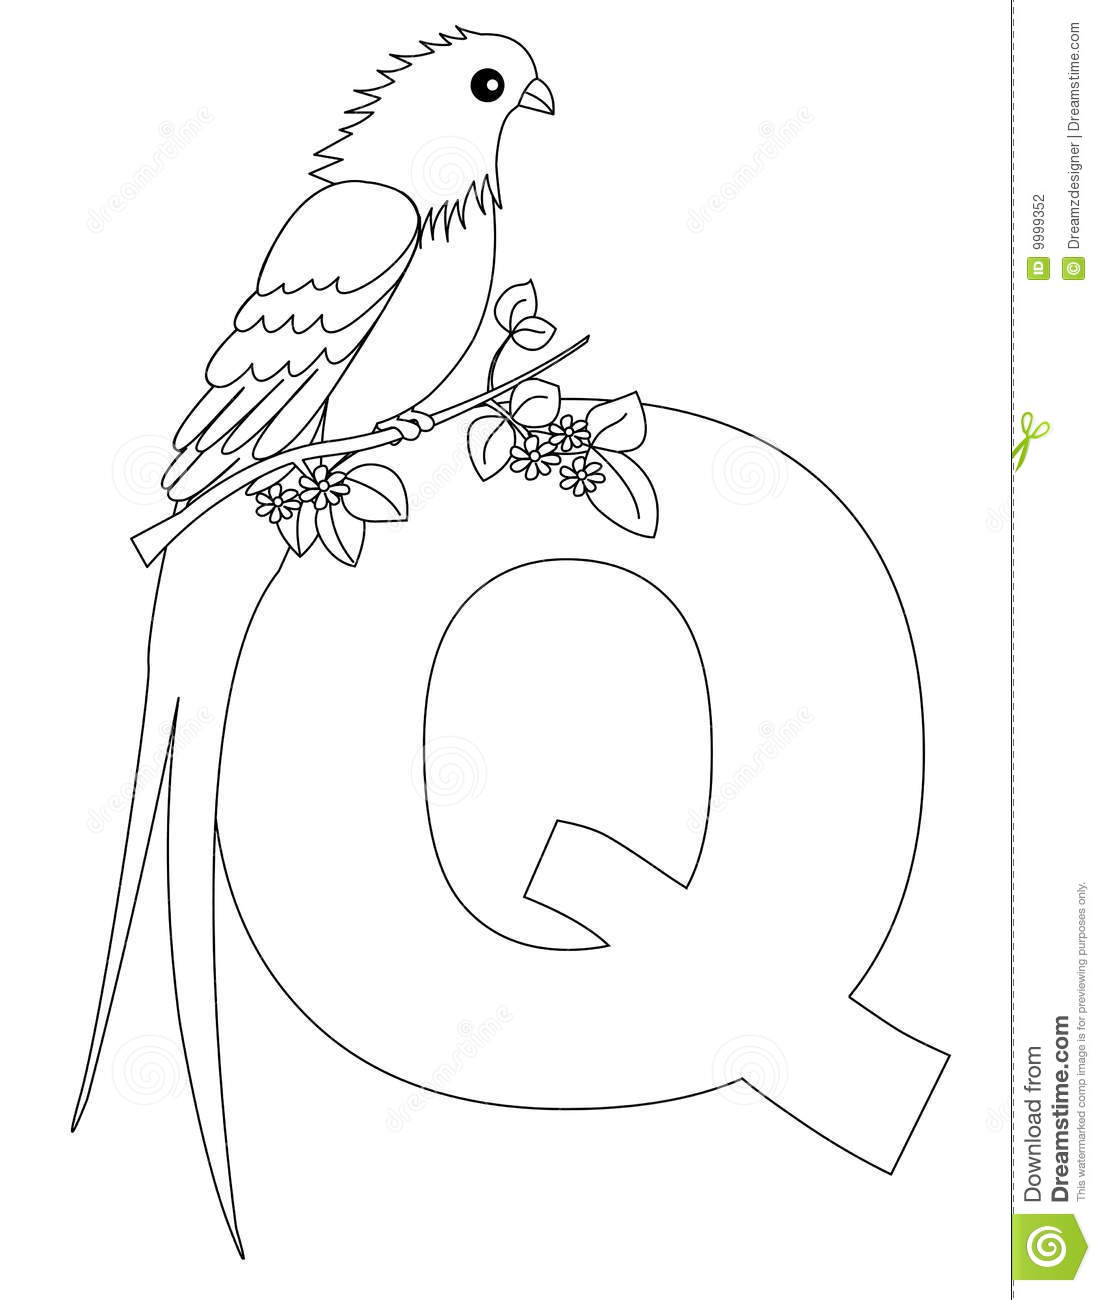 Animal Alphabet Q Coloring Page Stock Vector ...